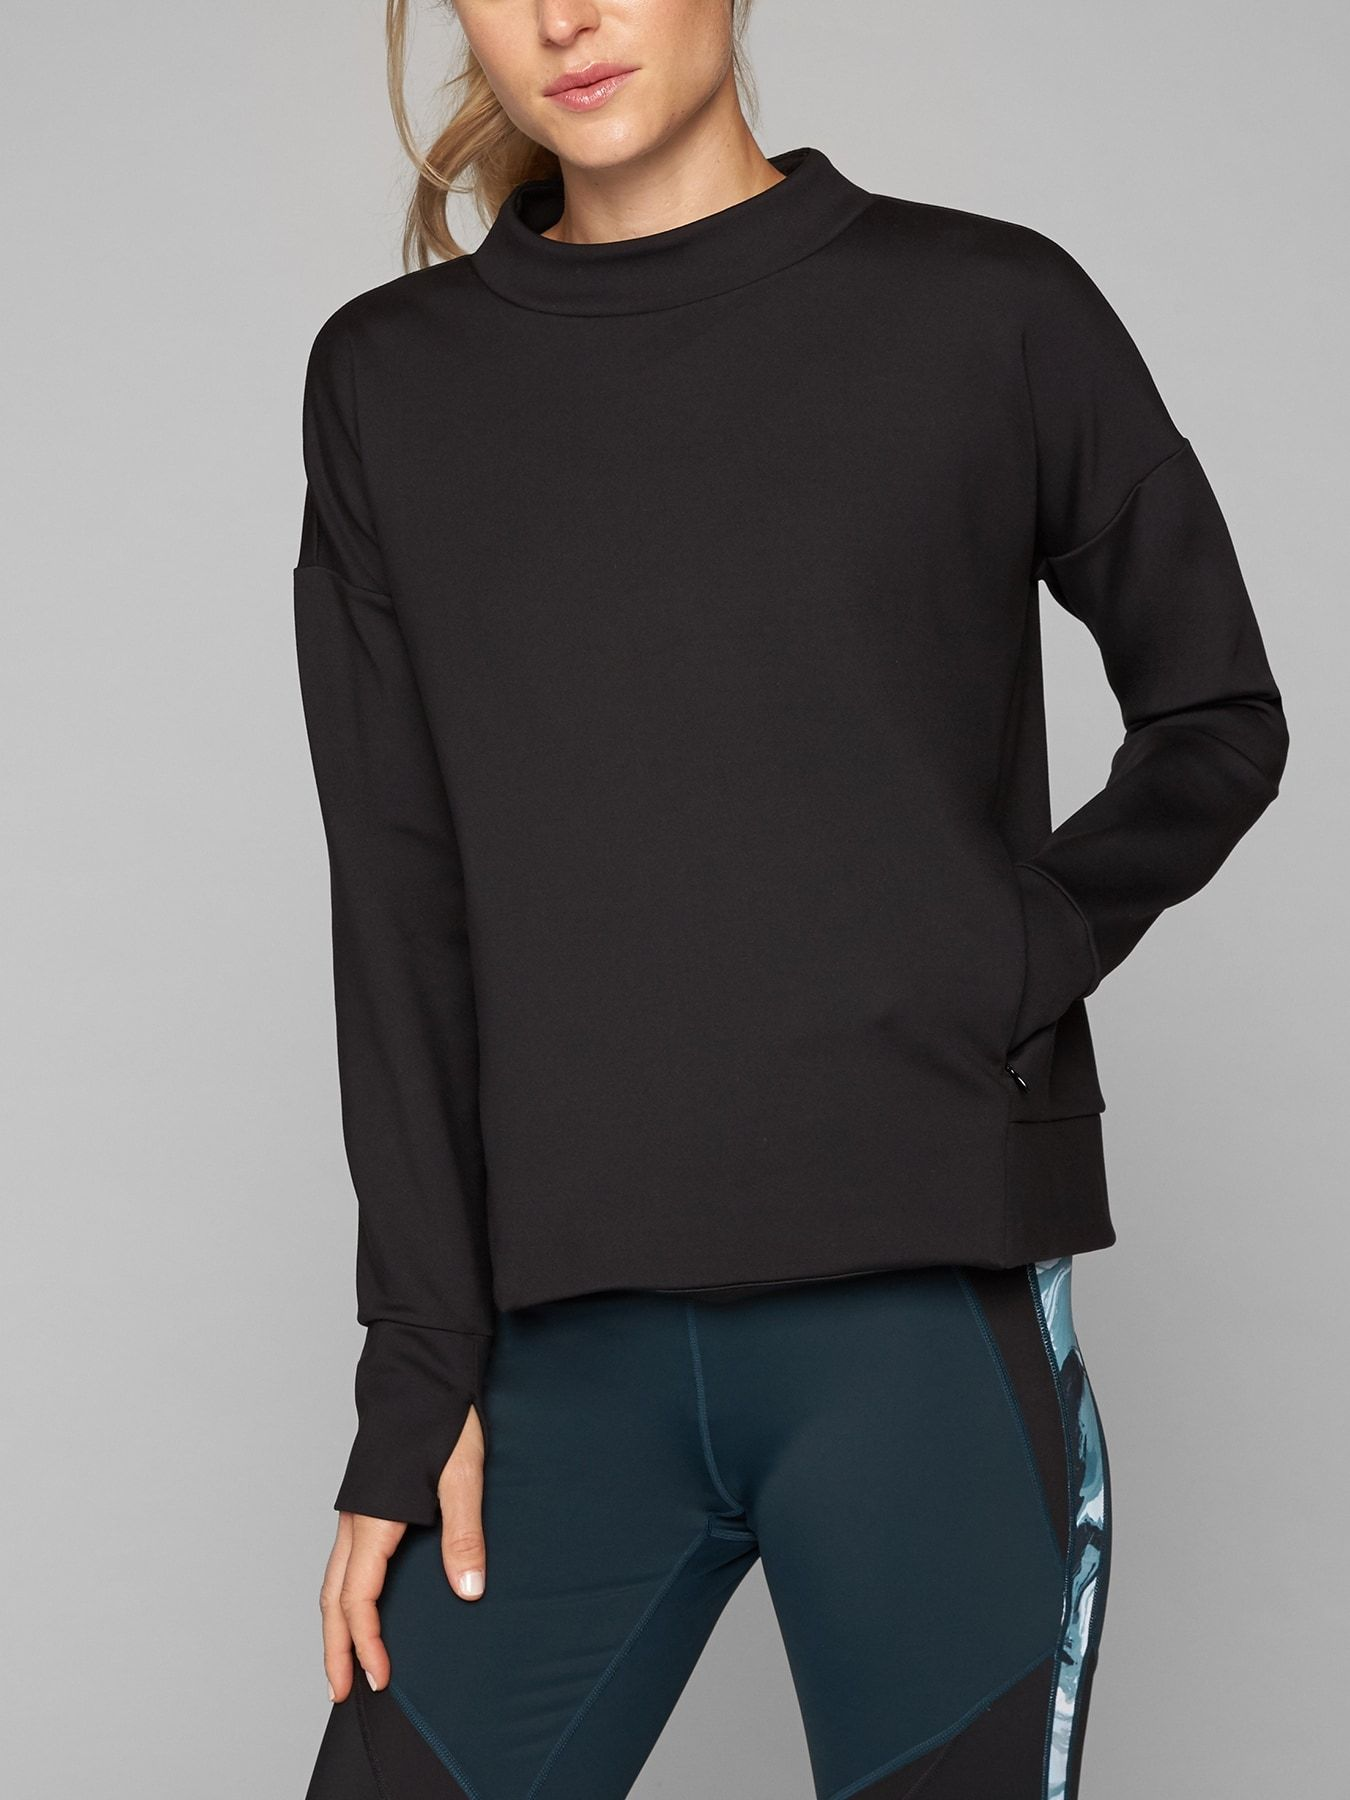 d0b593bfe4490 Saw this on Athleta  product photo. product photo Business Casual